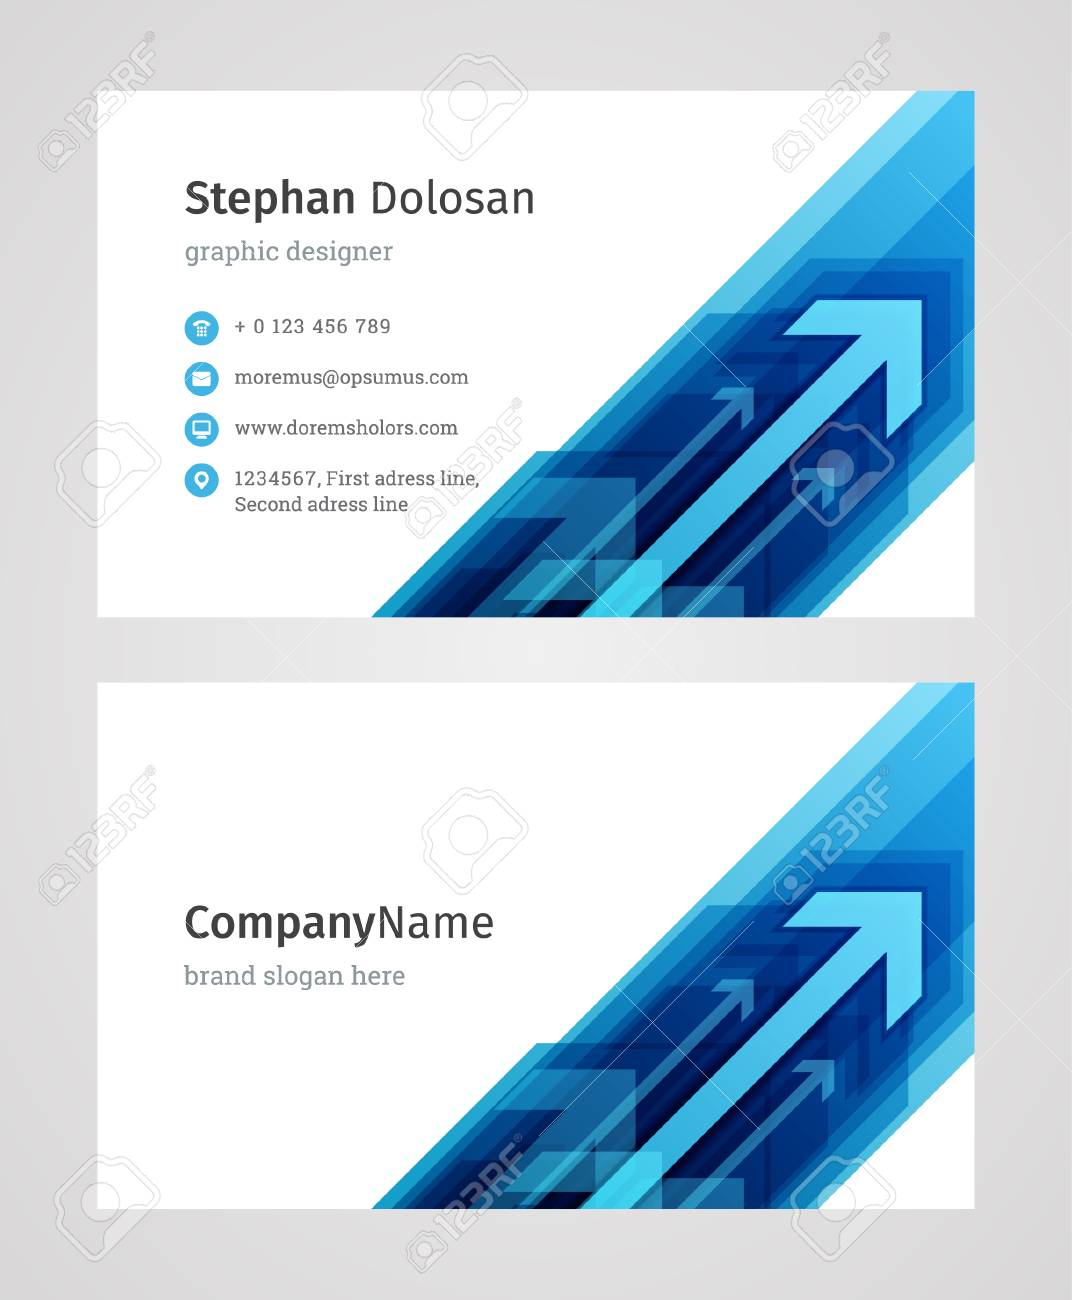 Creative Business Card Template Modern And Clean Corporate Design